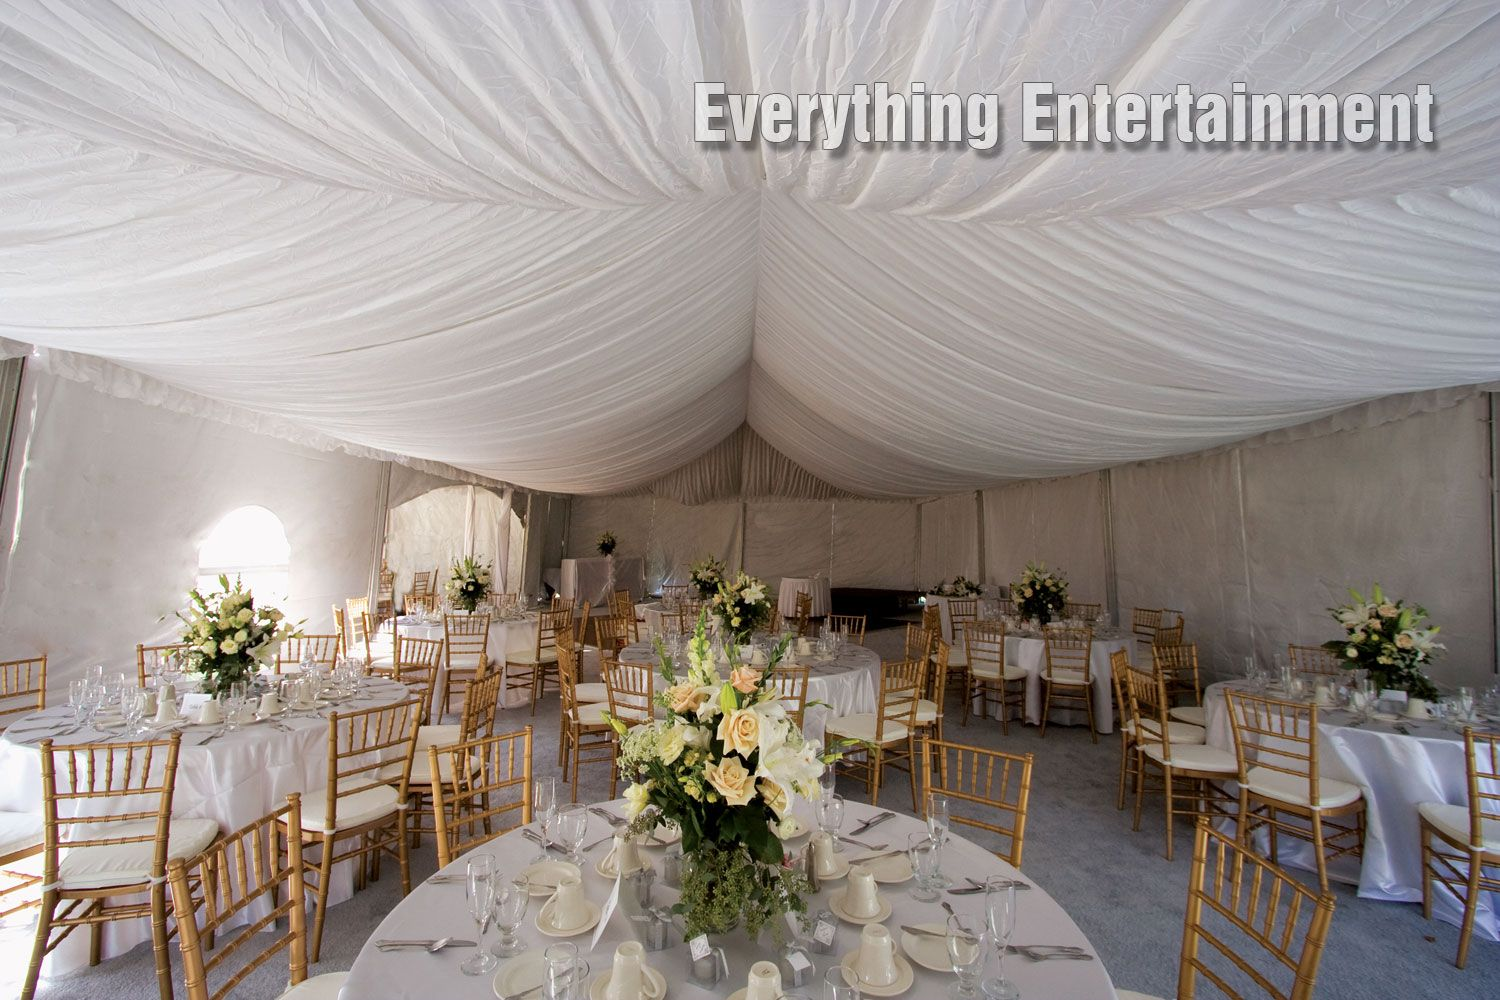 30x50 Frame Tent With Tent Liner And Carpeted Floor Entertaining Decor Tent Wedding Rentals